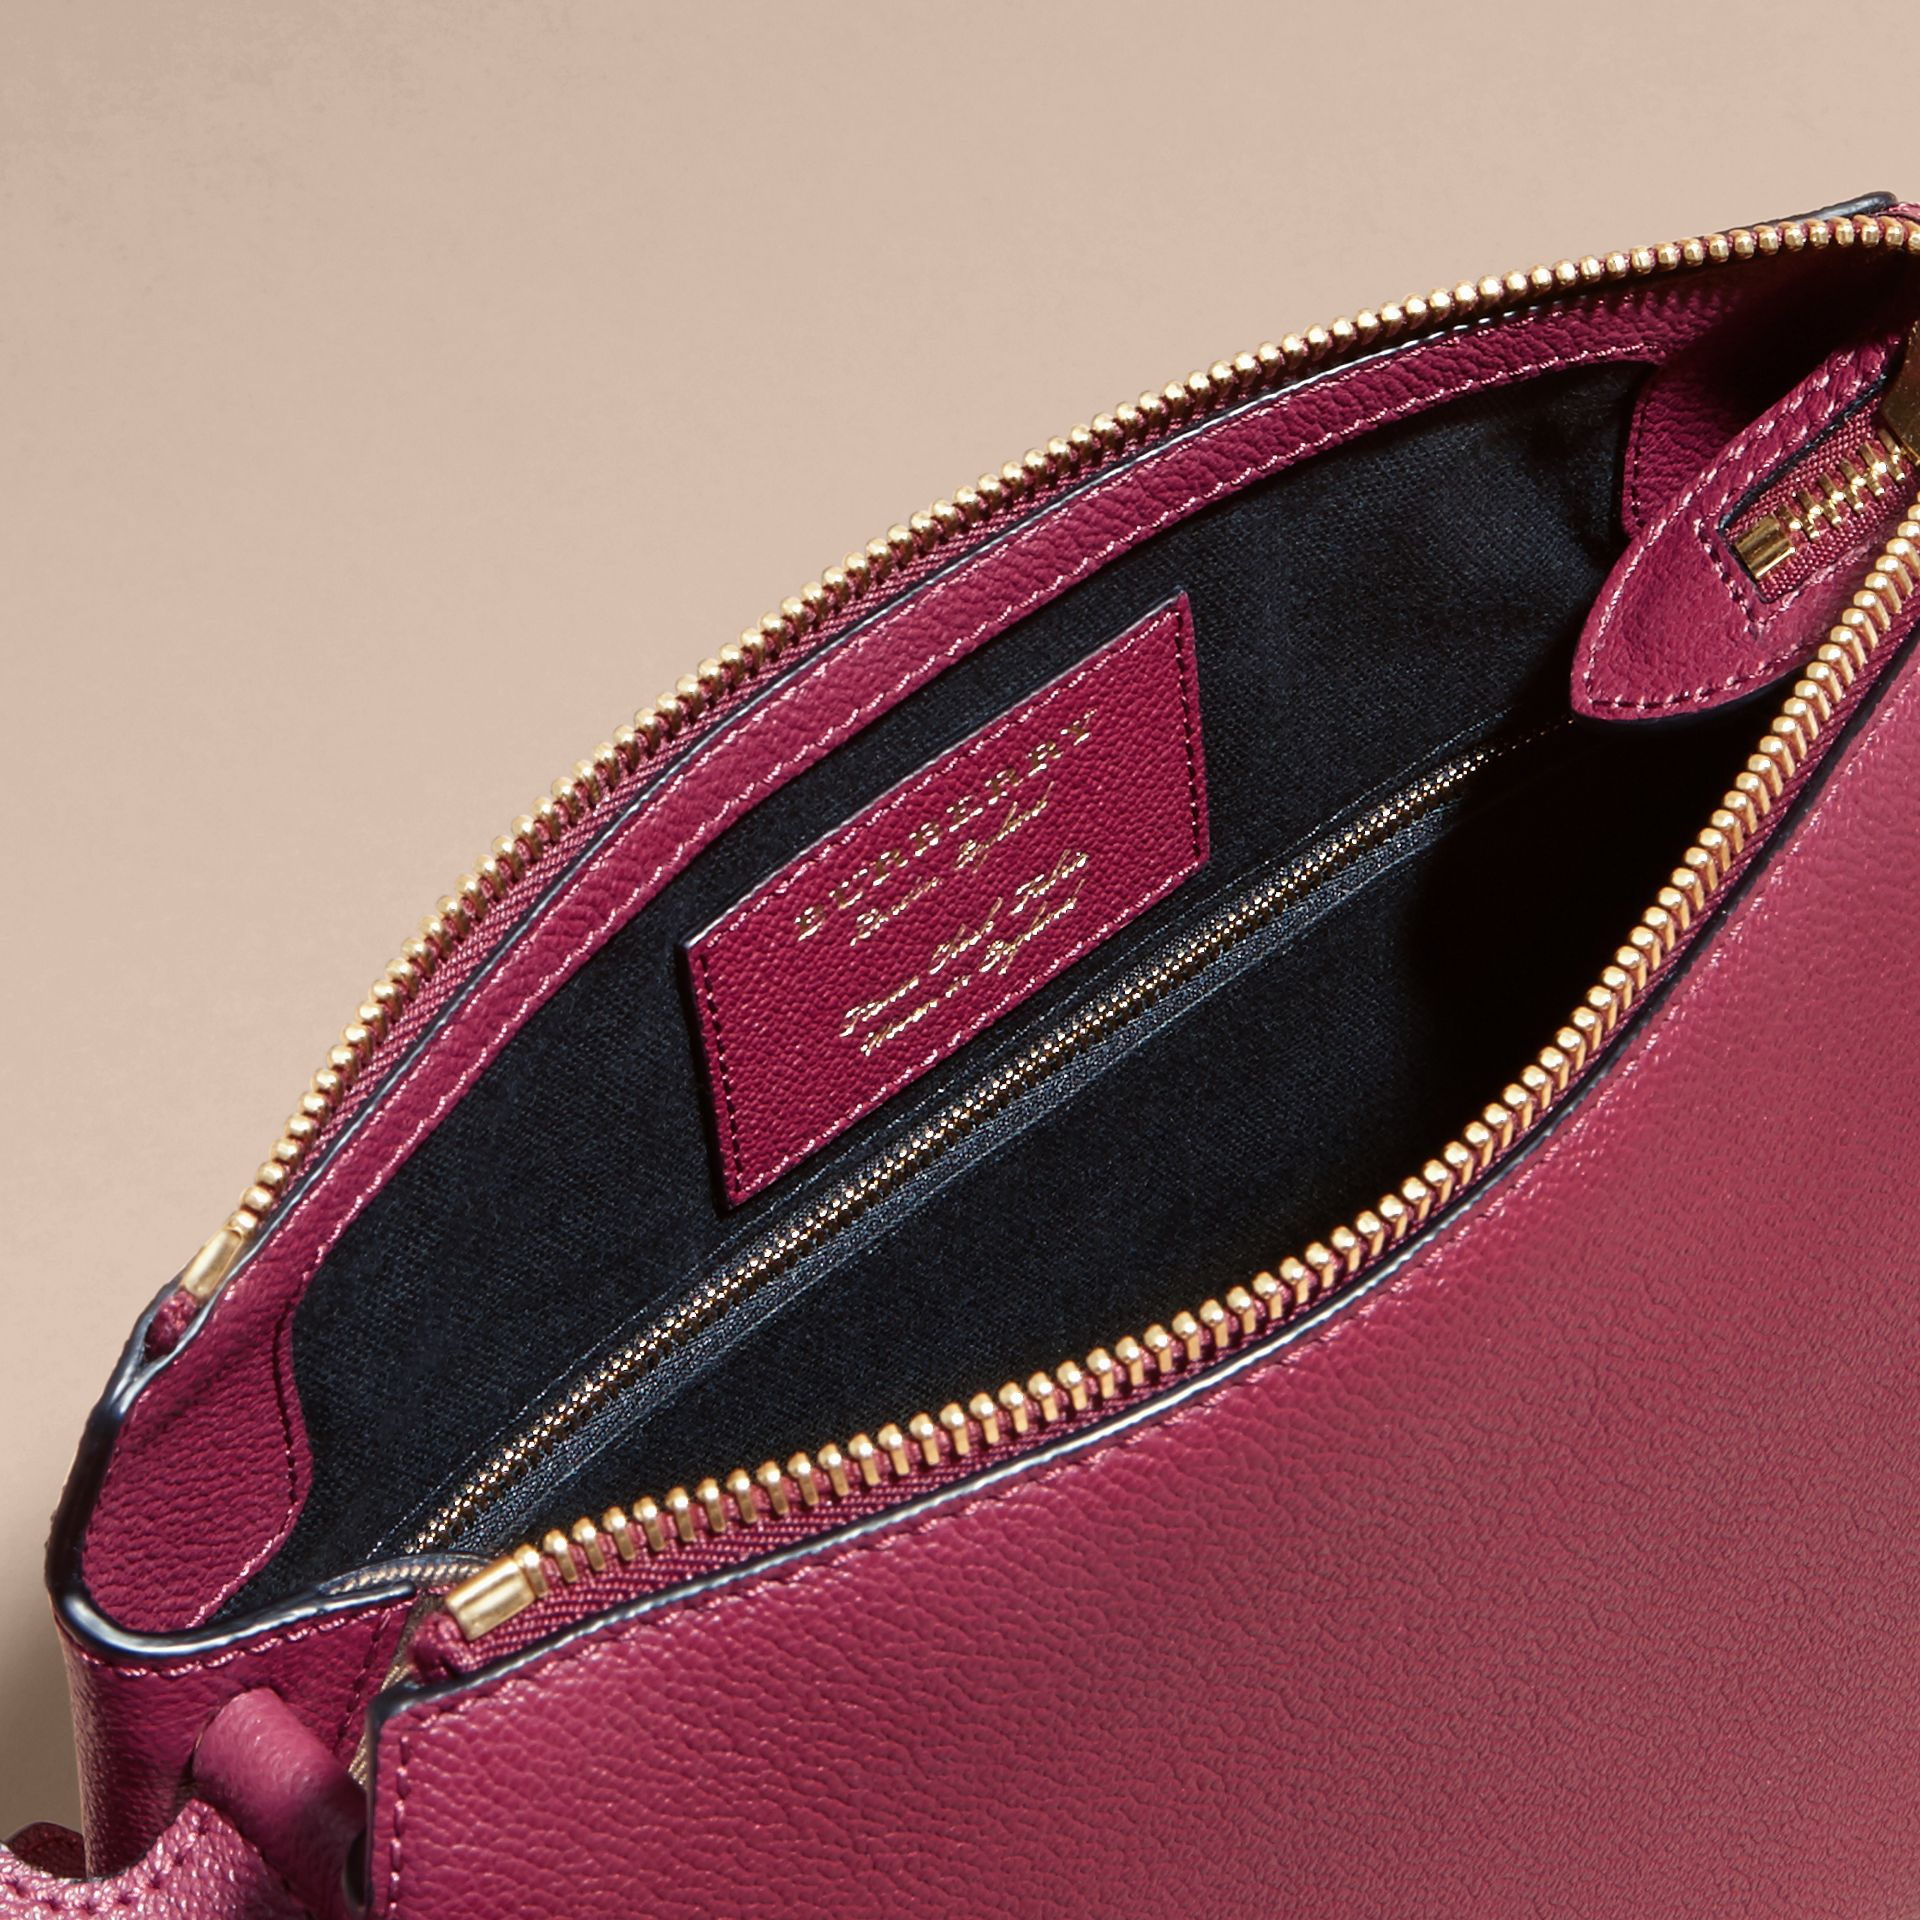 Buckle Detail Leather and House Check Crossbody Bag in Dark Plum - Women | Burberry - gallery image 5